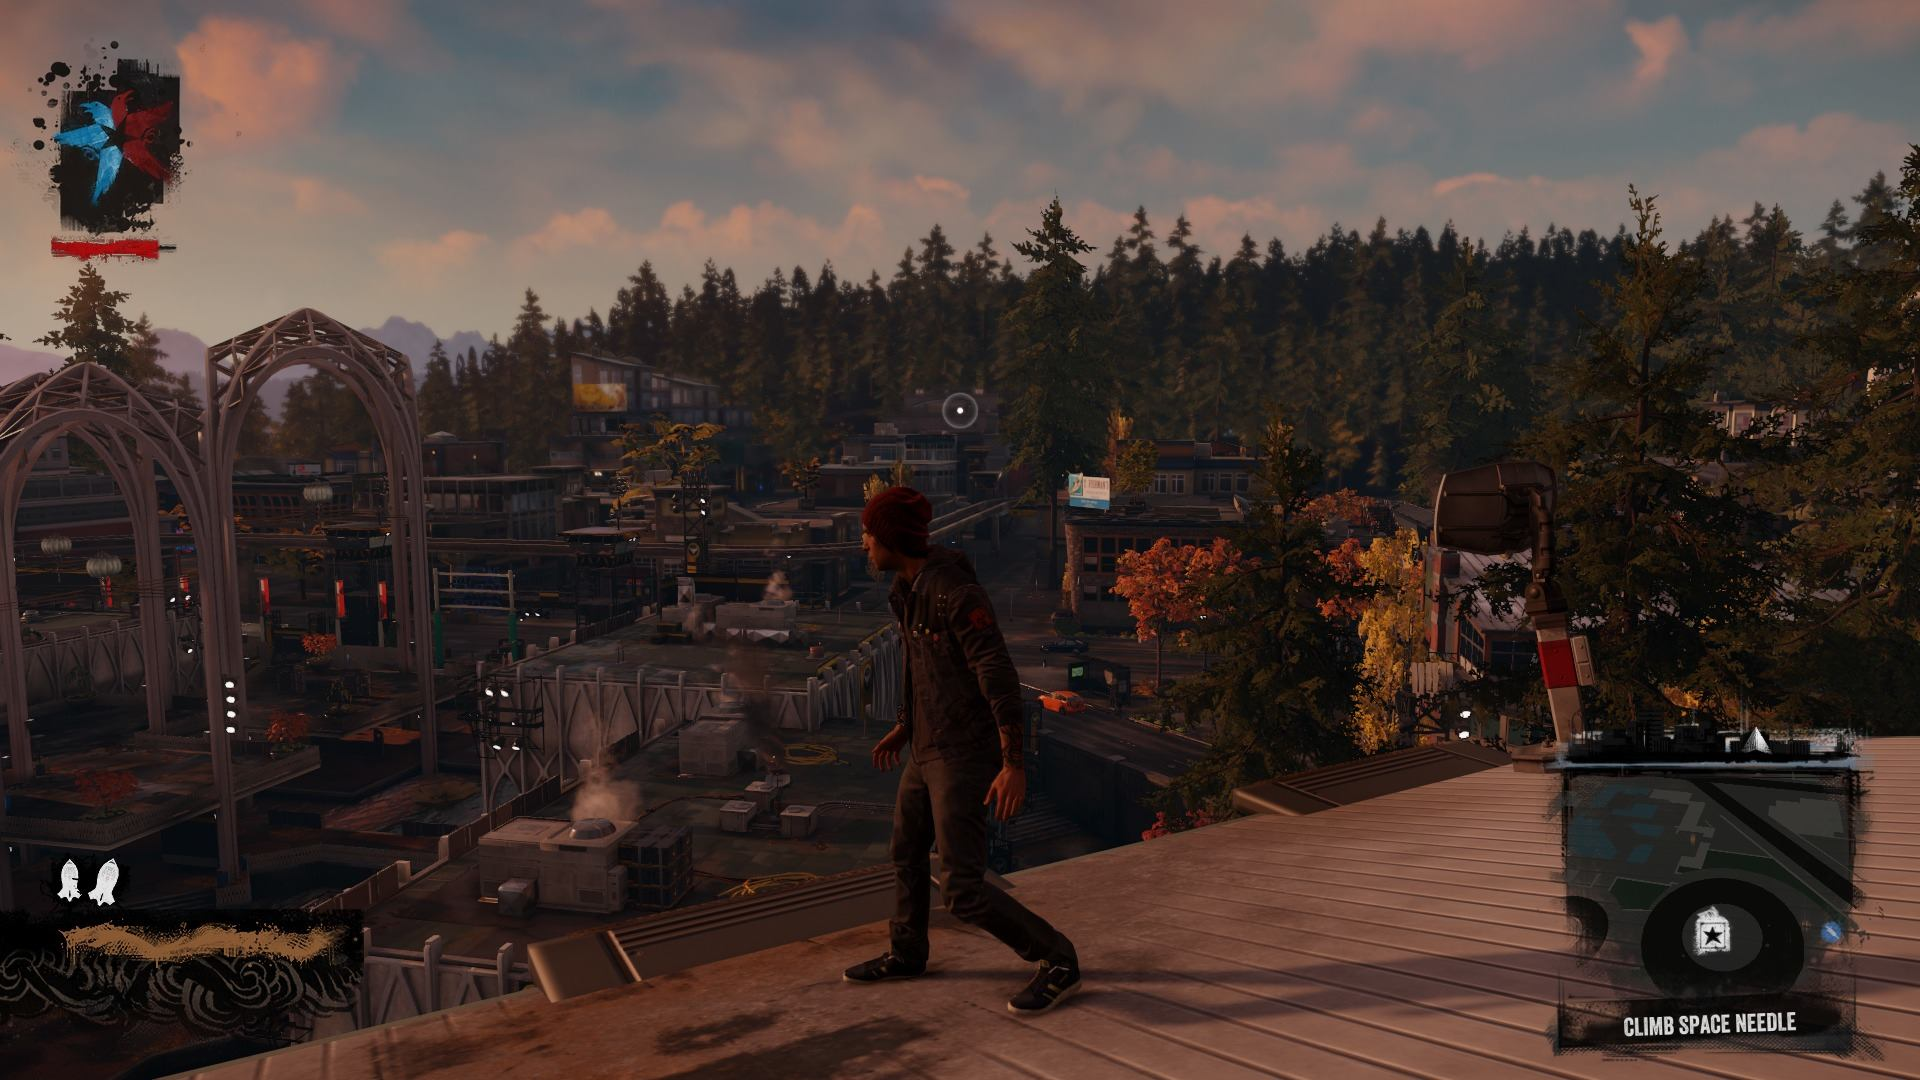 inFAMOUS: Second Son Gameplay Shown Off In Gorgeous New